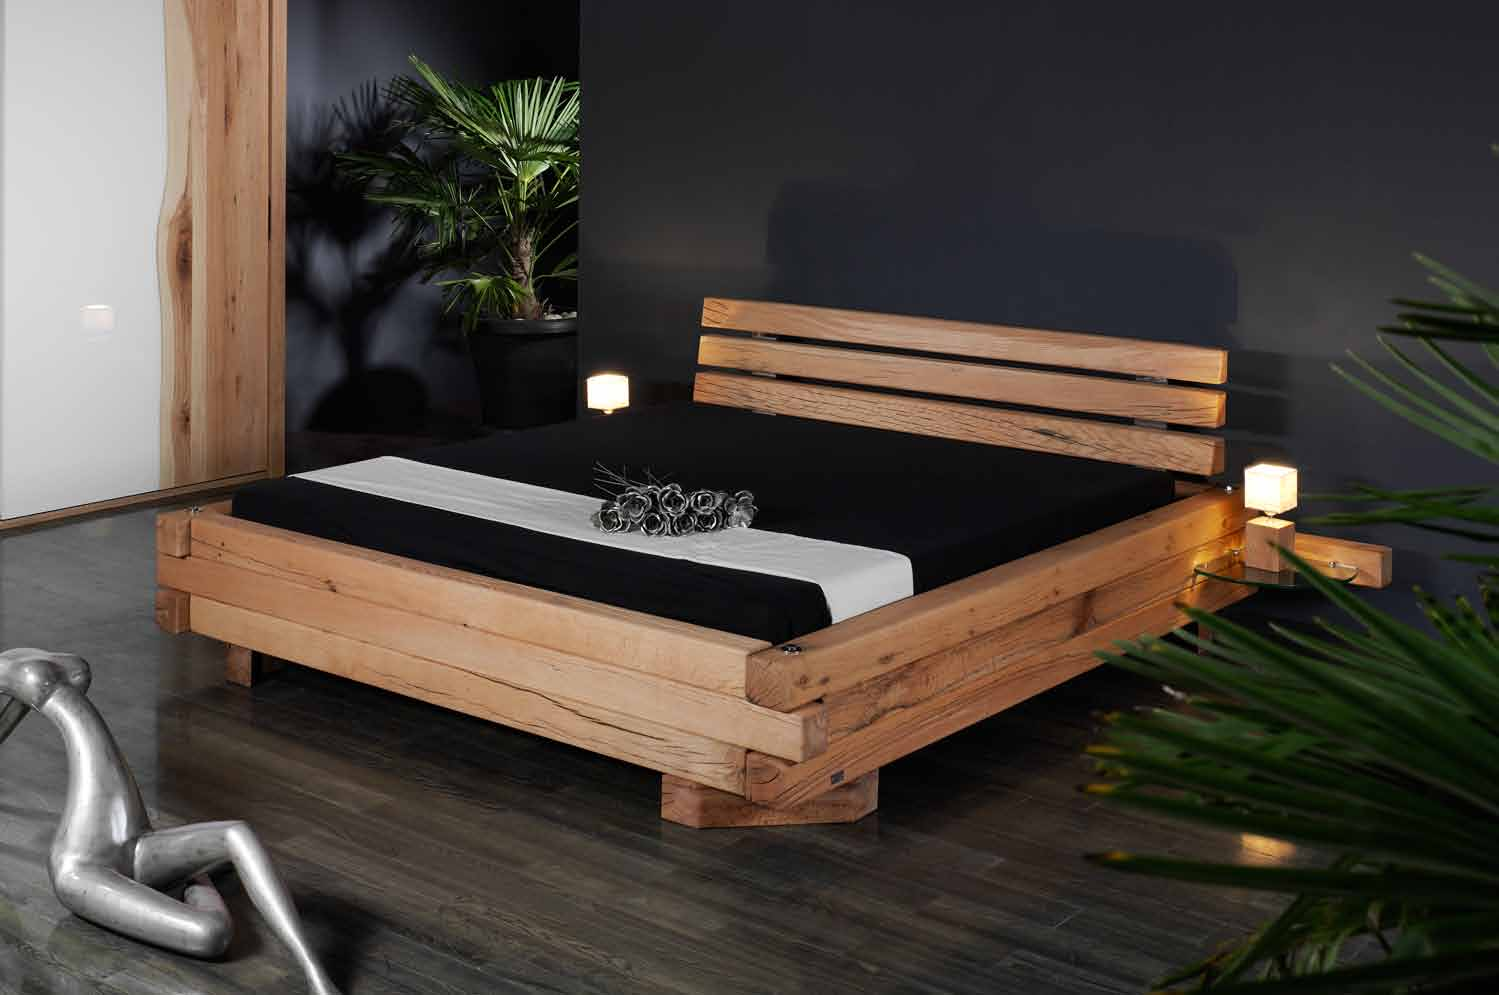 sprenger b lkli bett boschung. Black Bedroom Furniture Sets. Home Design Ideas